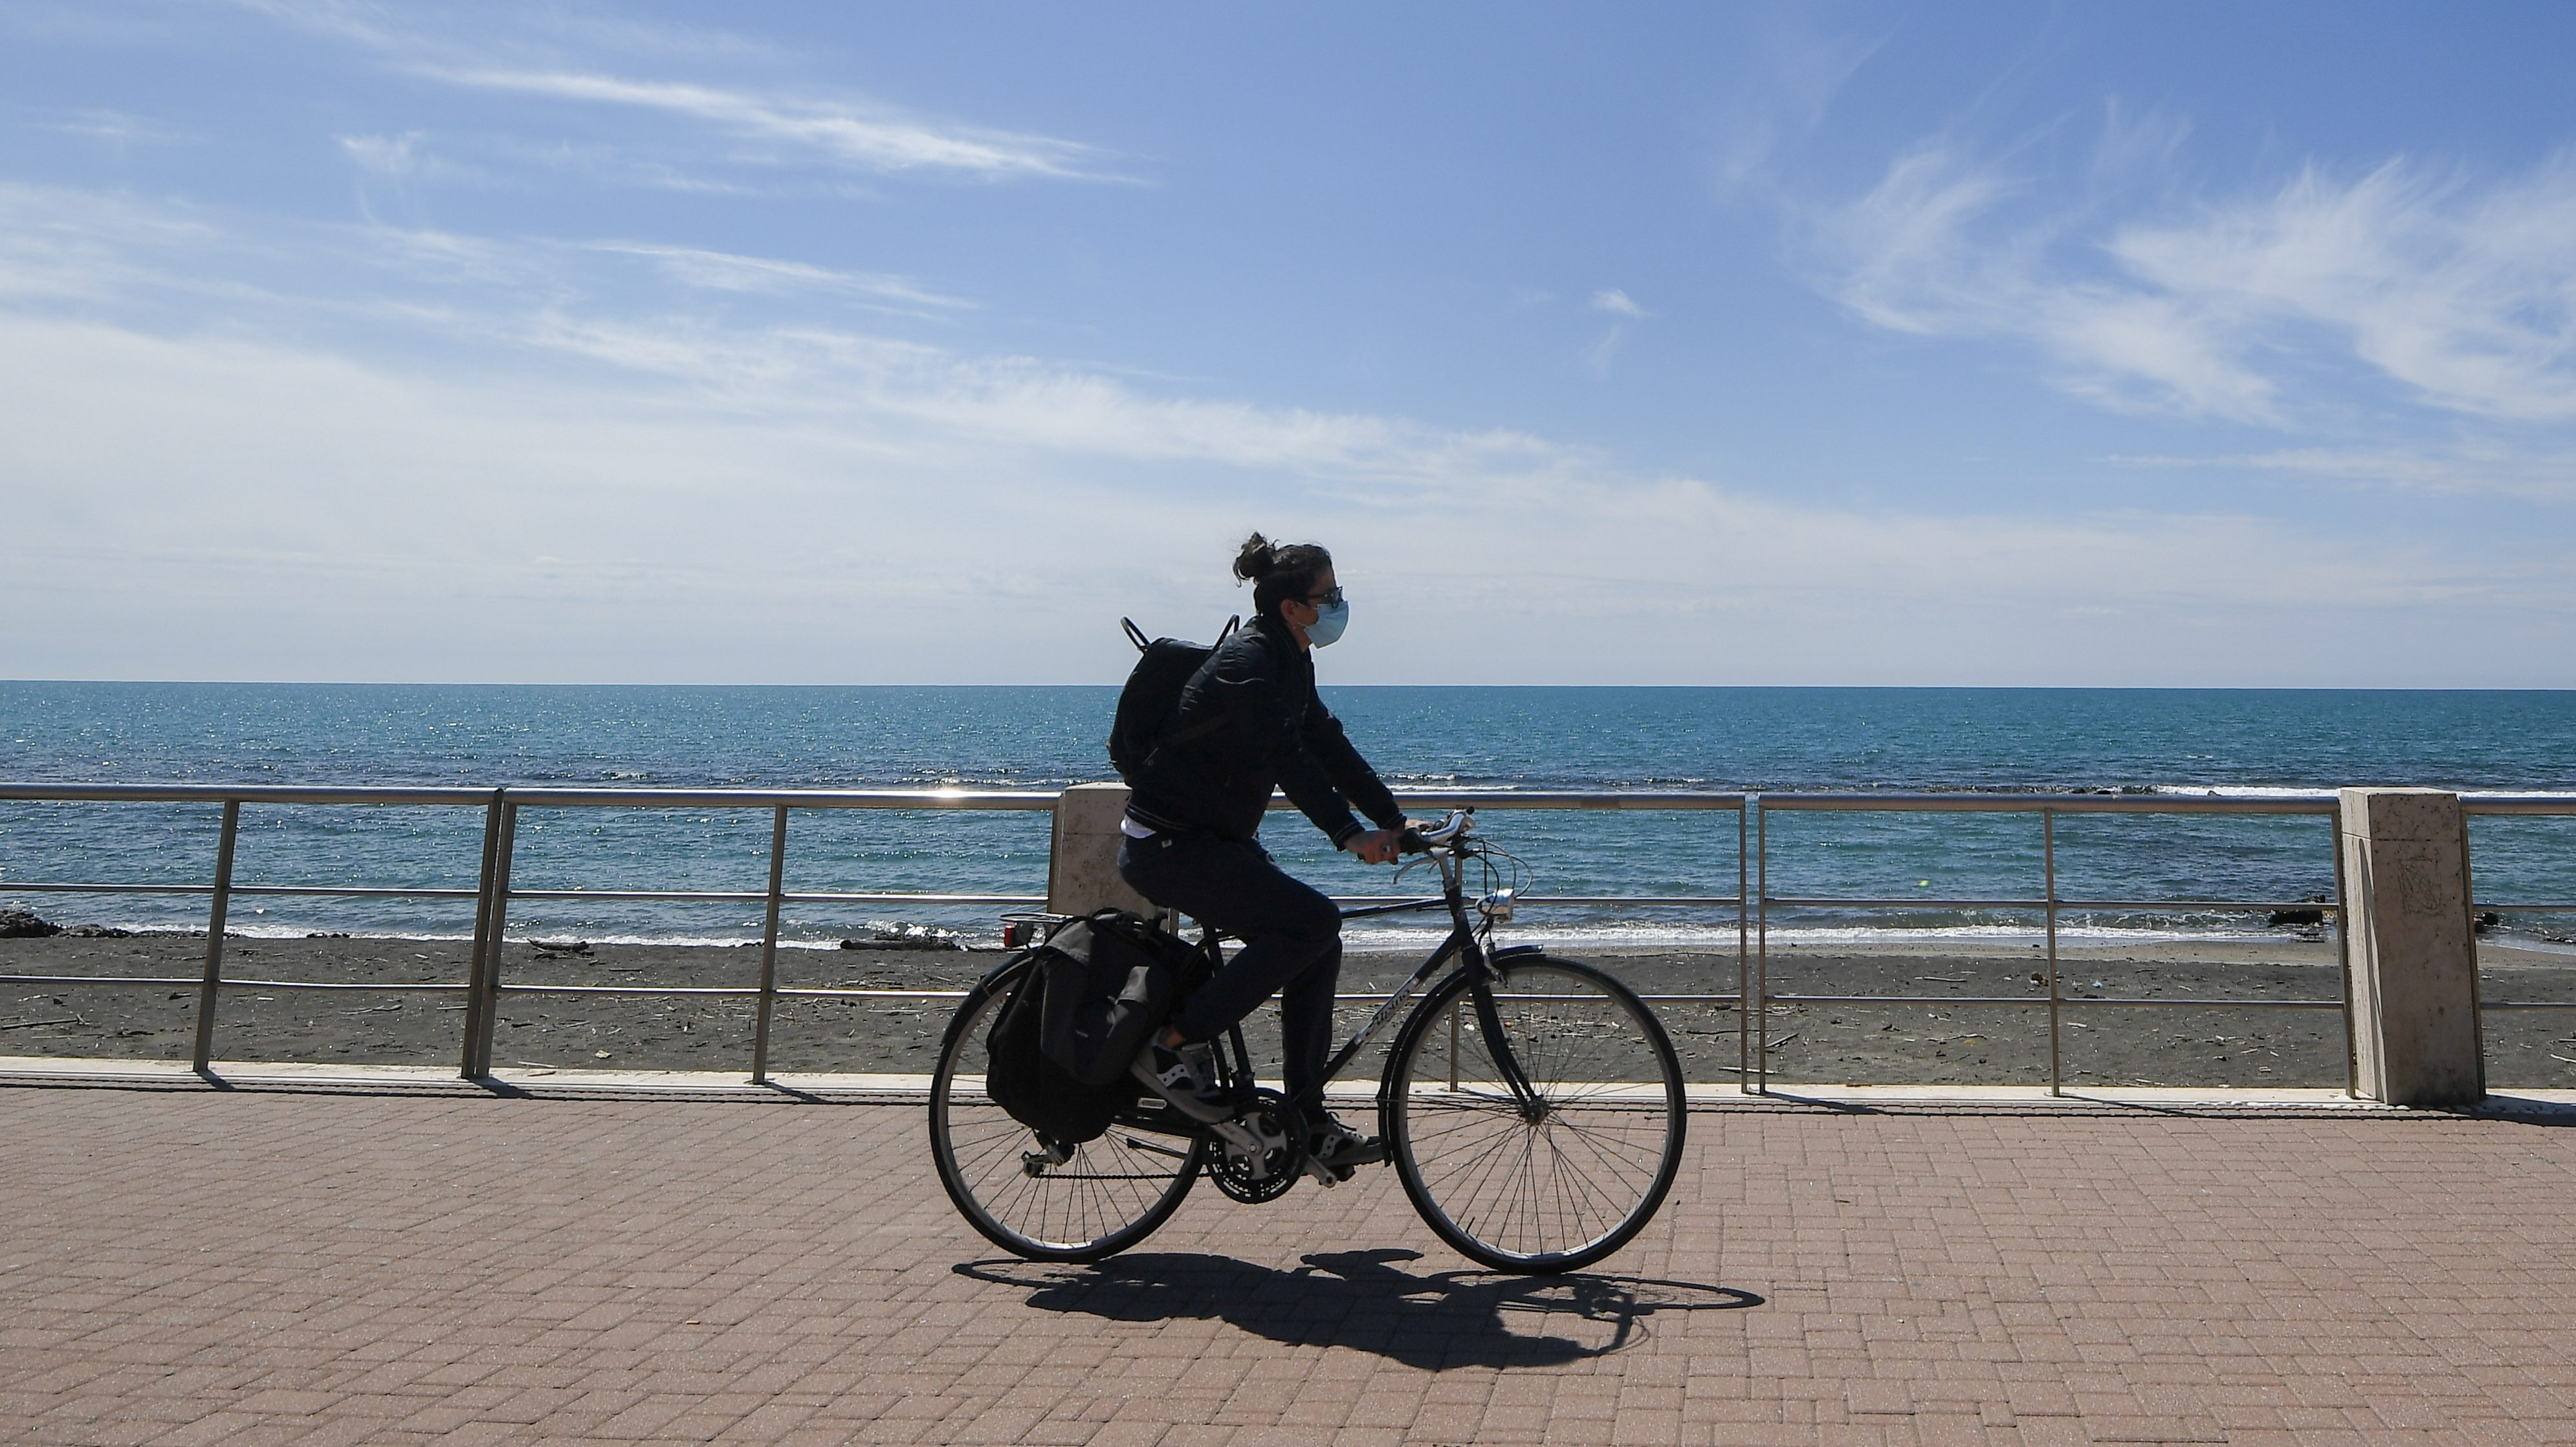 A woman with a face mask rides her bicycle at the touristic port in Ostia near Rome, as the spread of the coronavirus disease (COVID-19) continues in Italy, April 26, 2020